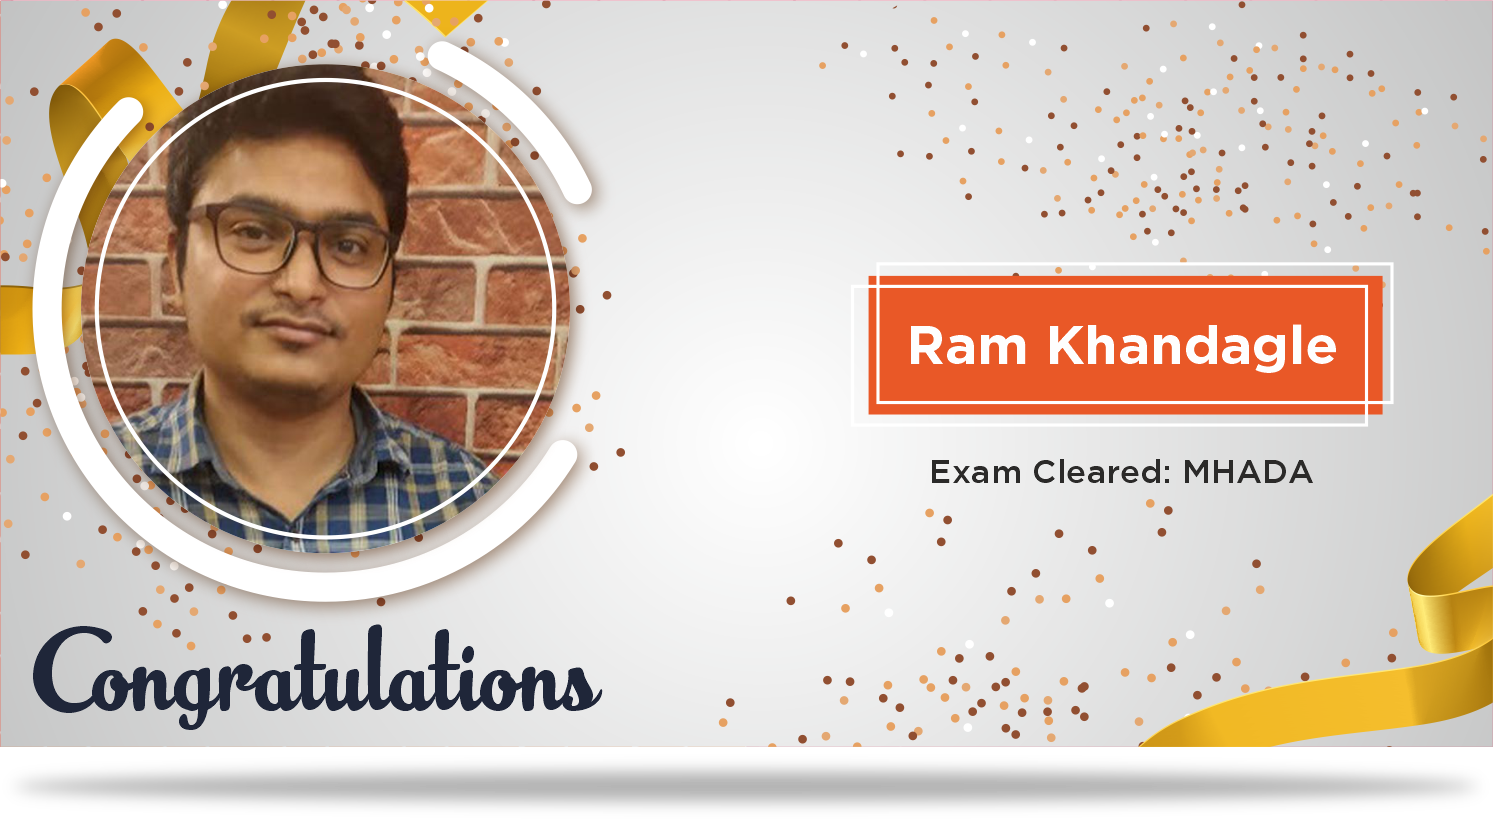 congrats-ram-khandagle-guidance-group